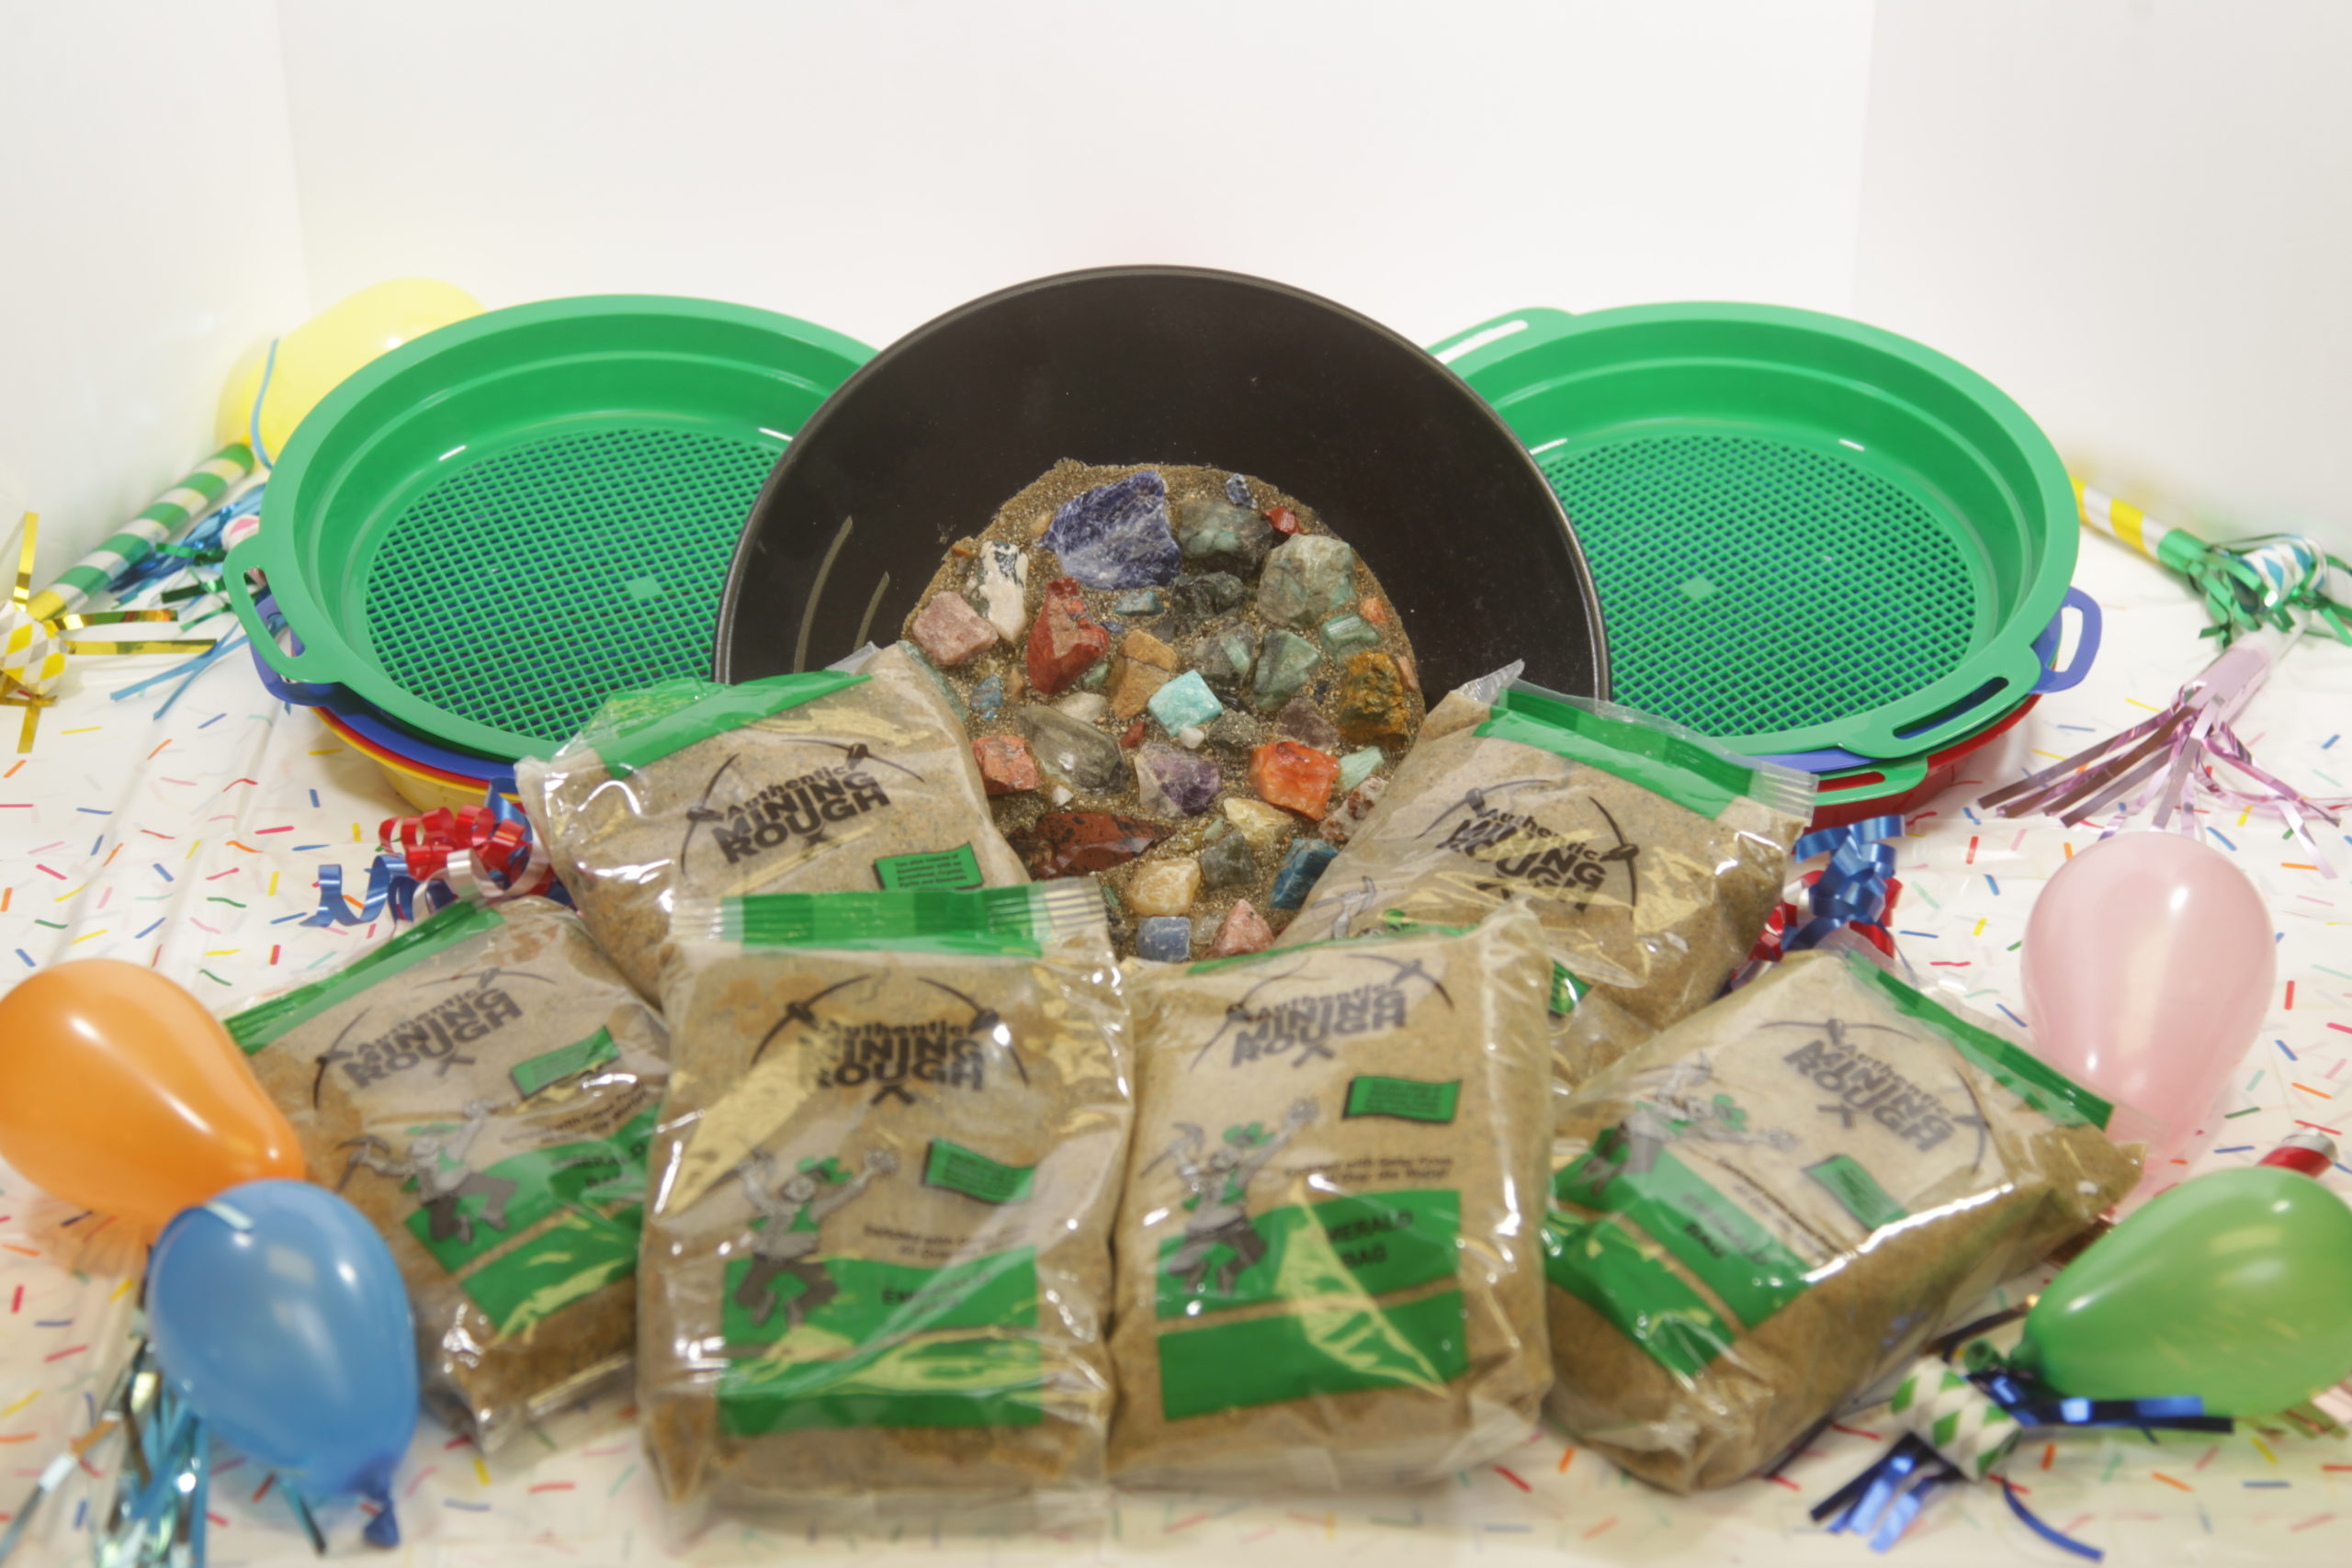 Gemstone Mining Party Pack kit with sifters and six mining bags